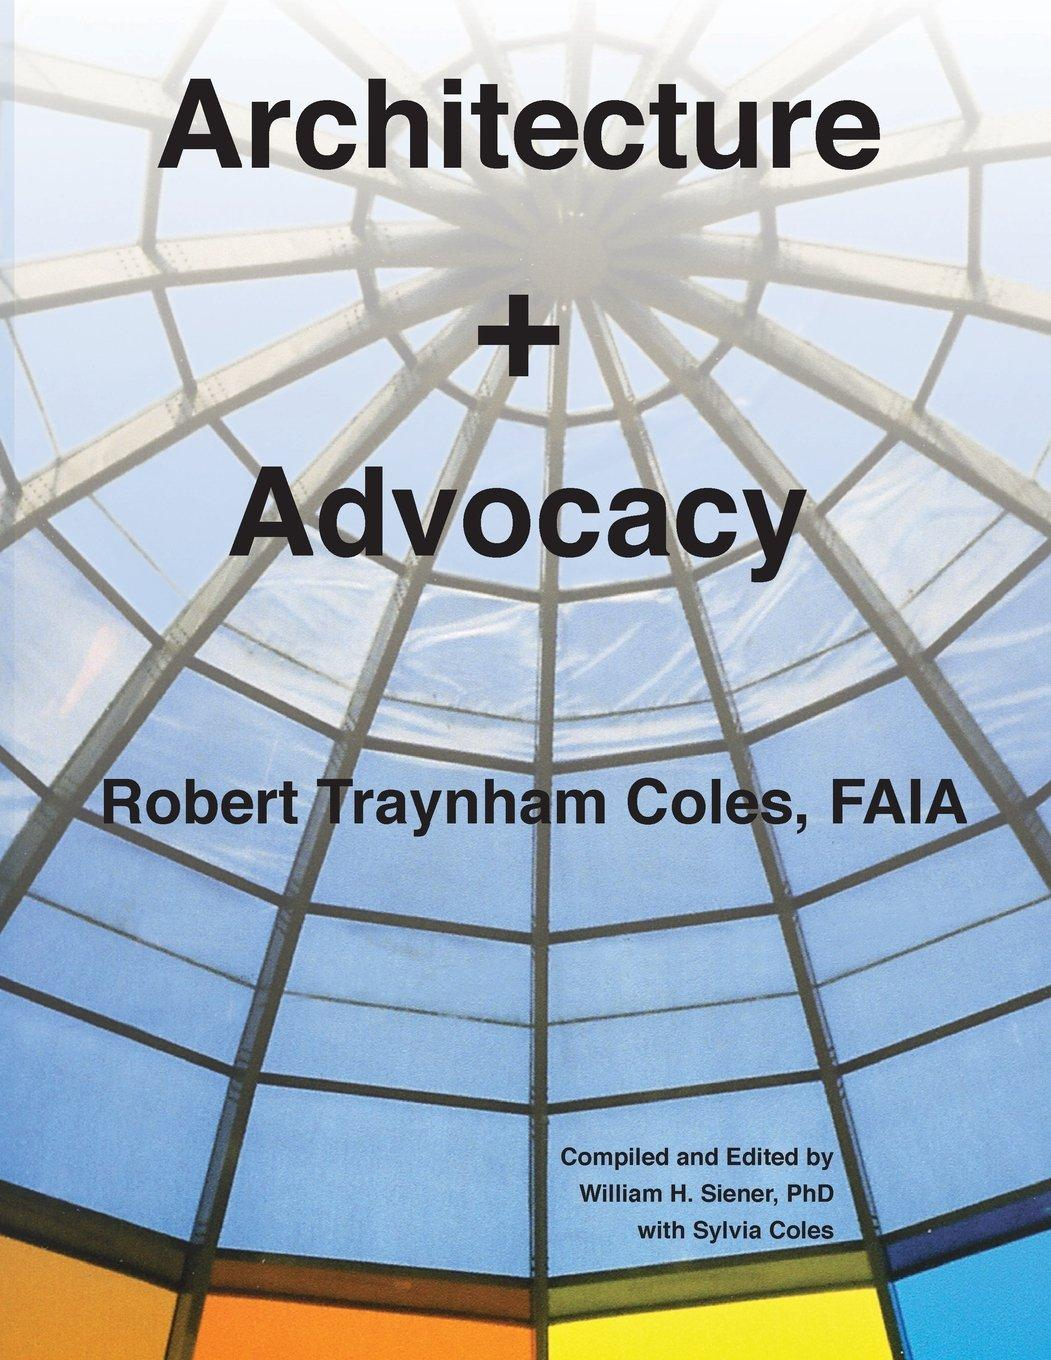 Brochure: Architecture+Advocacy by Robert T. Coles, 2016